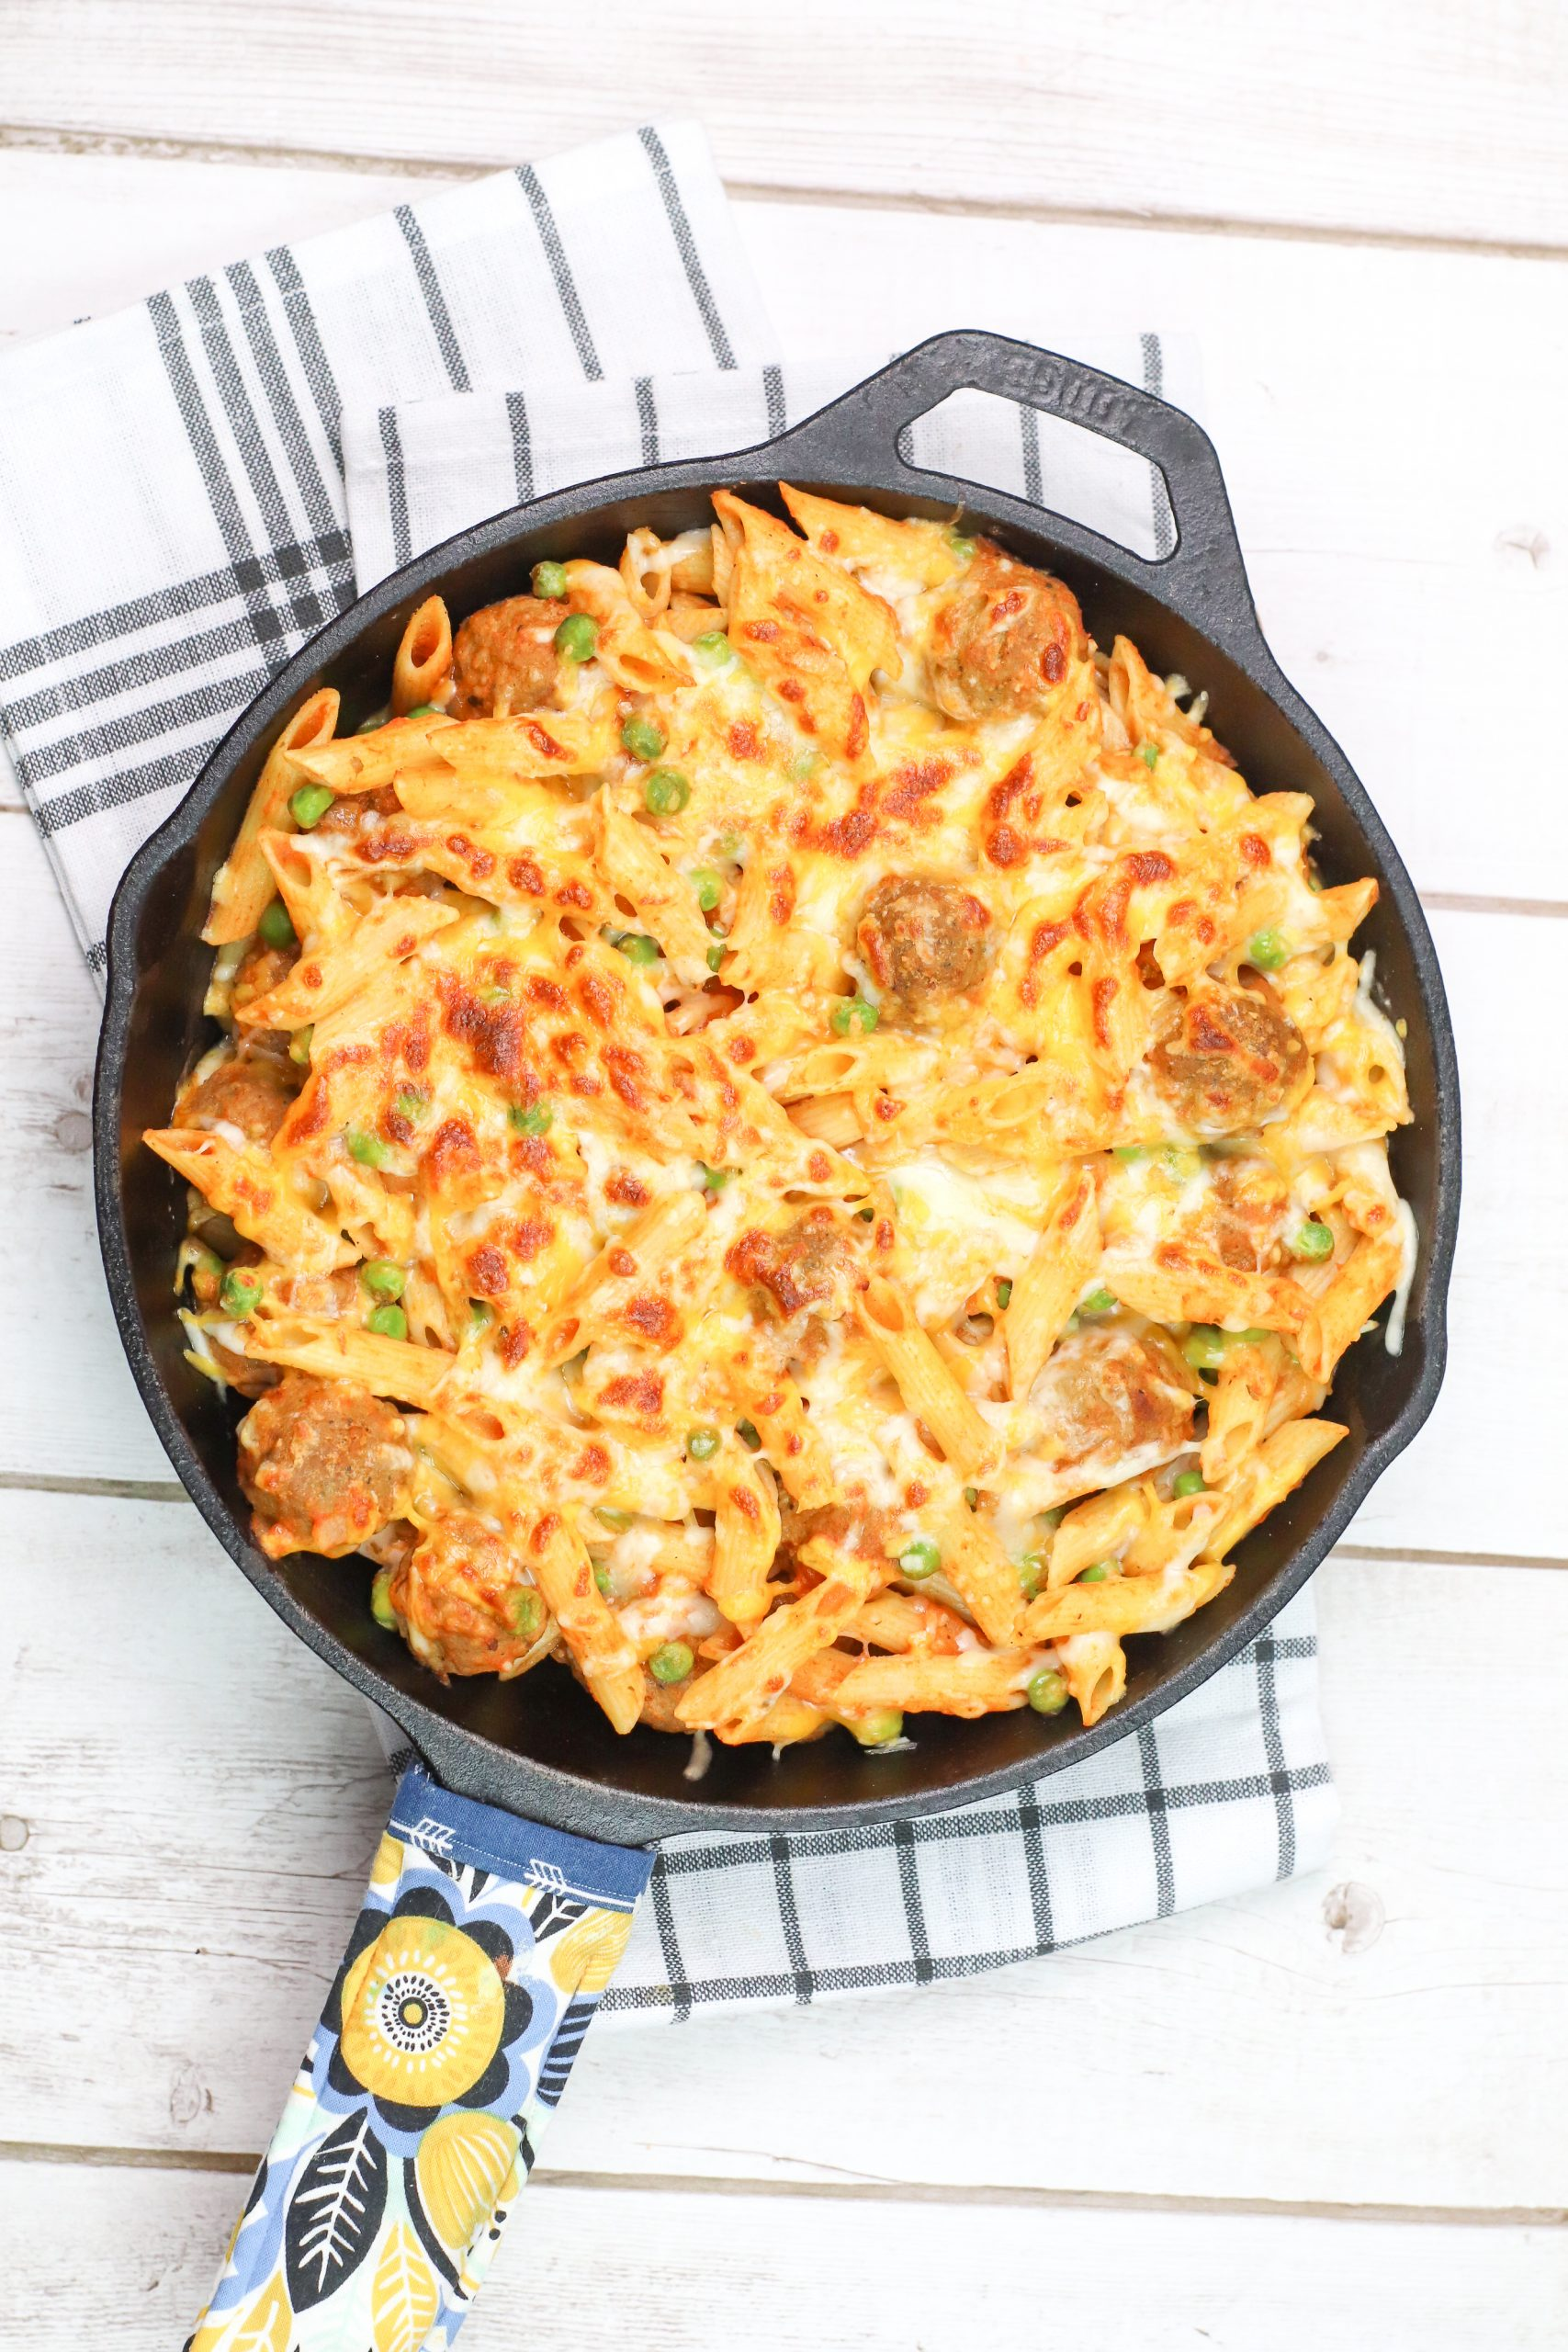 skillet with pasta and meatballs